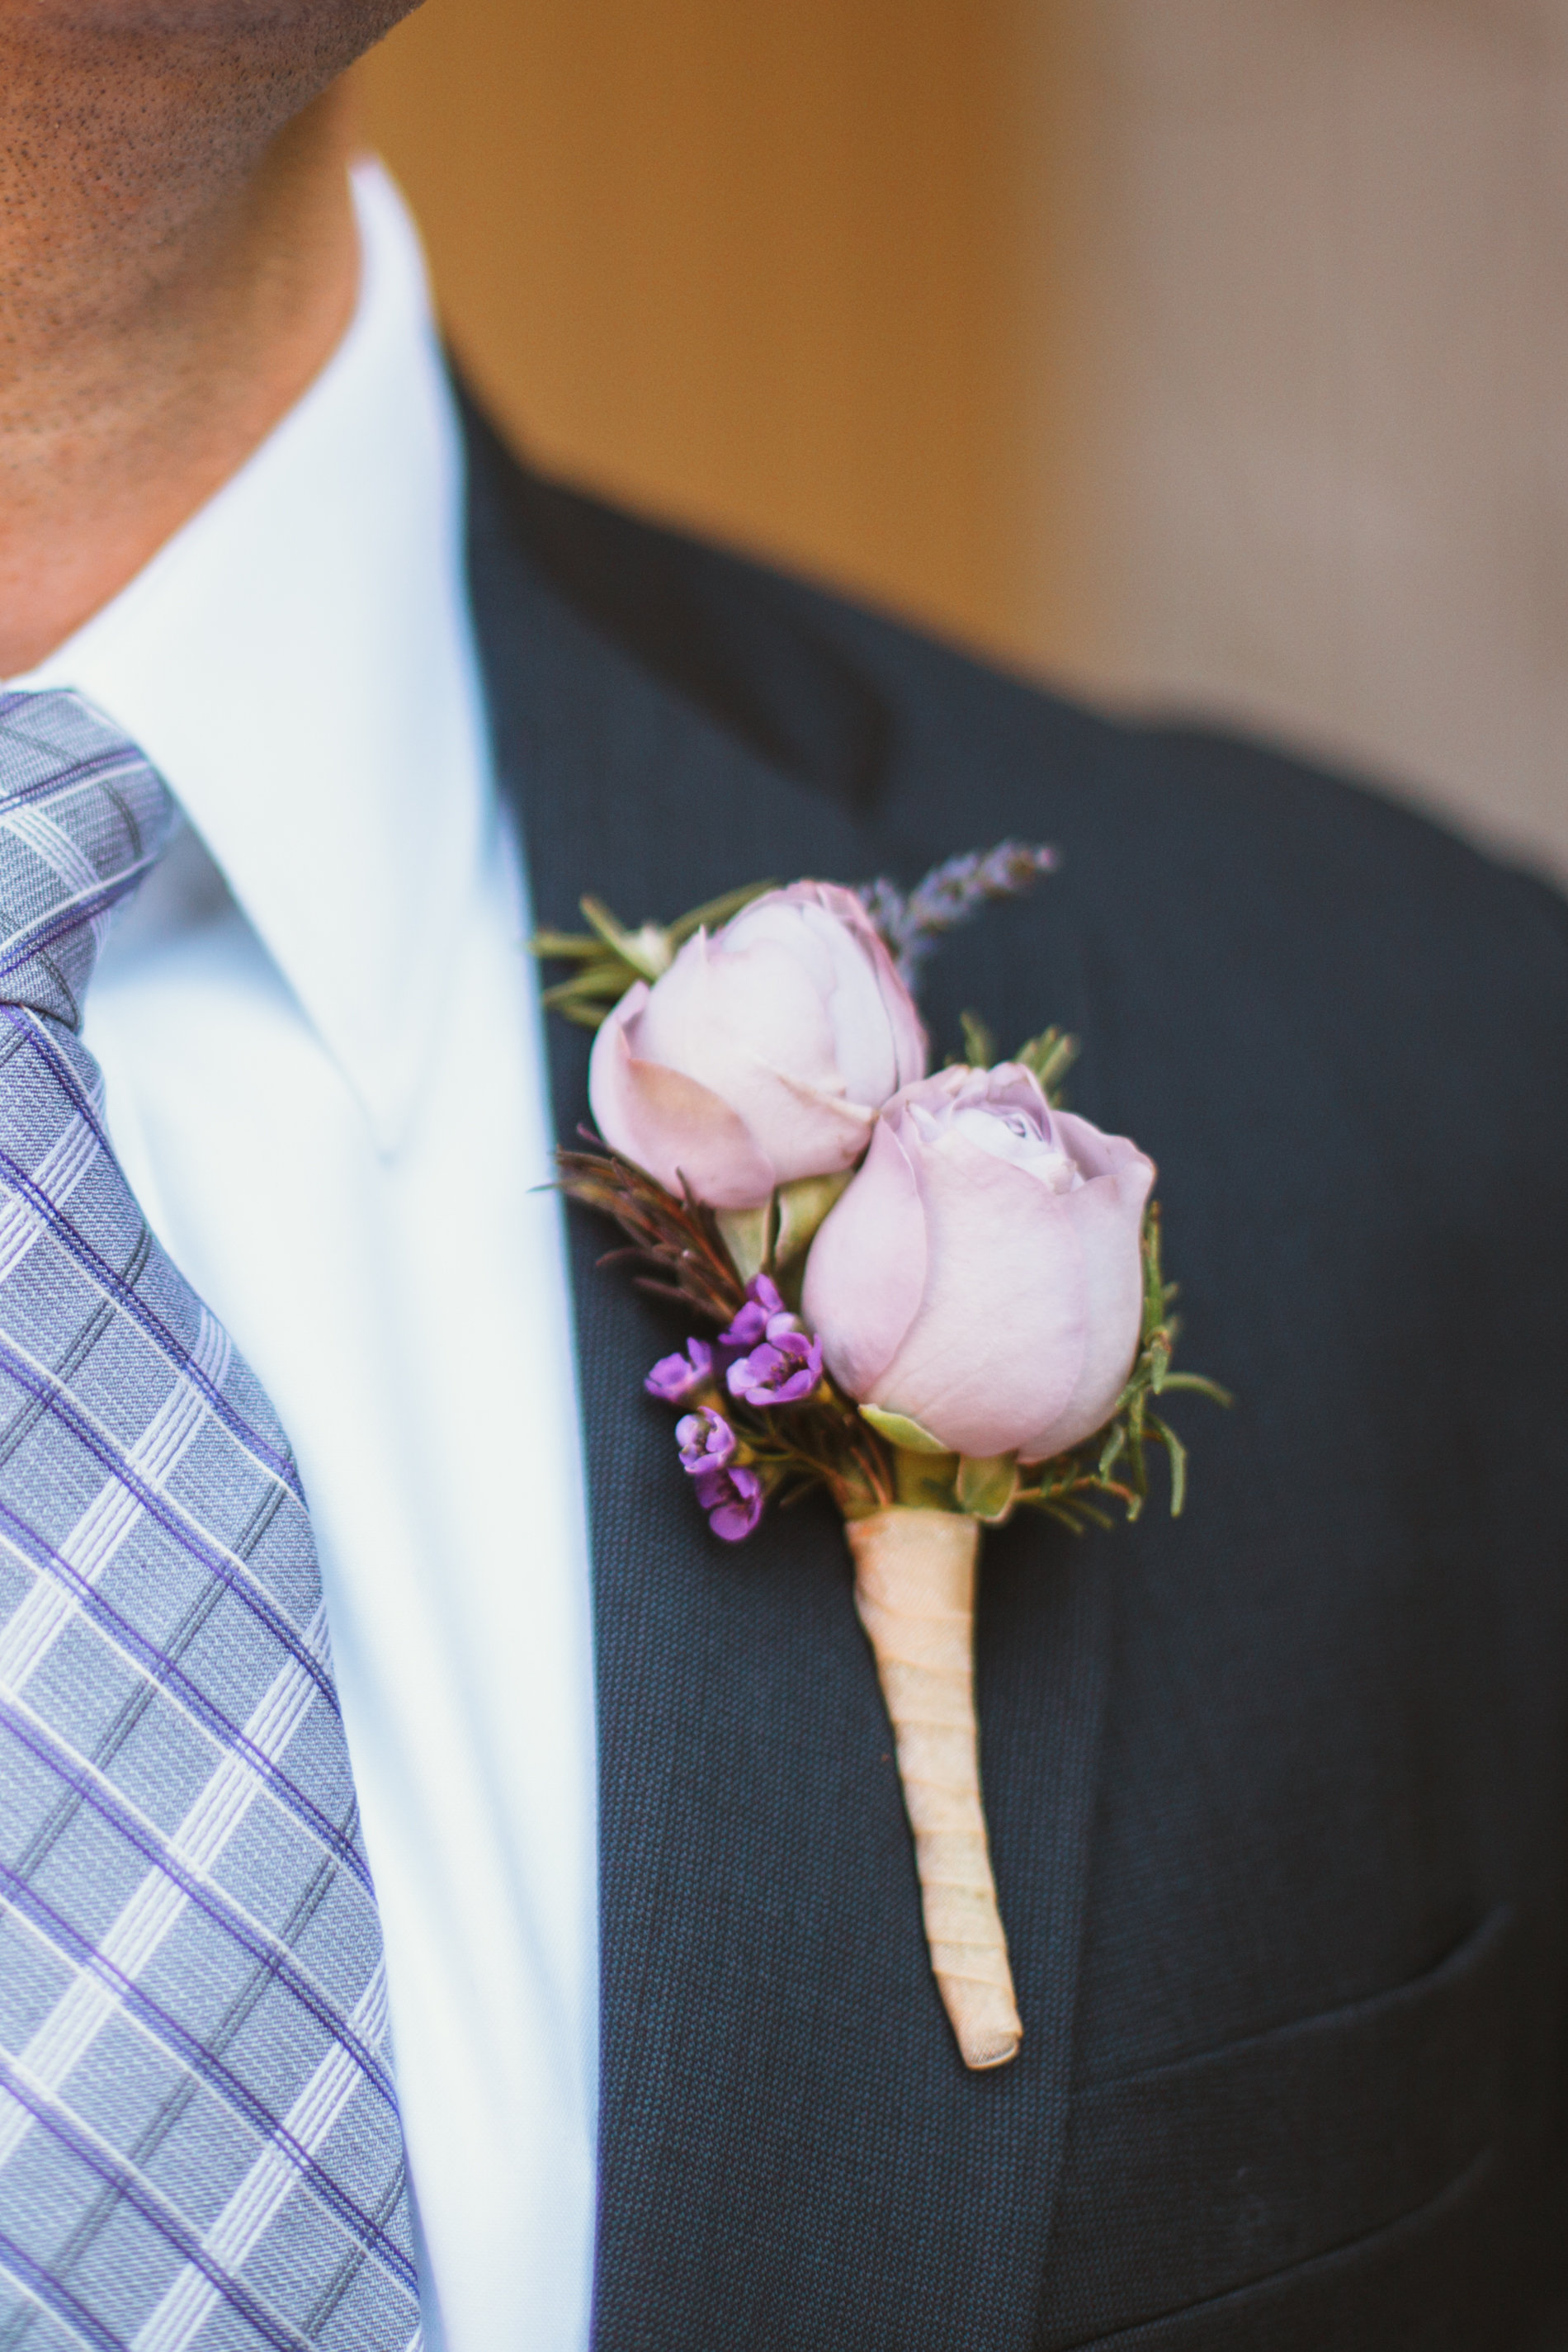 Seattle Wedding Planner, Wedding Wise | Ciccarelli Photography | Edgewater Hotel Wedding | Light purple groom's boutonniere on navy blue suit